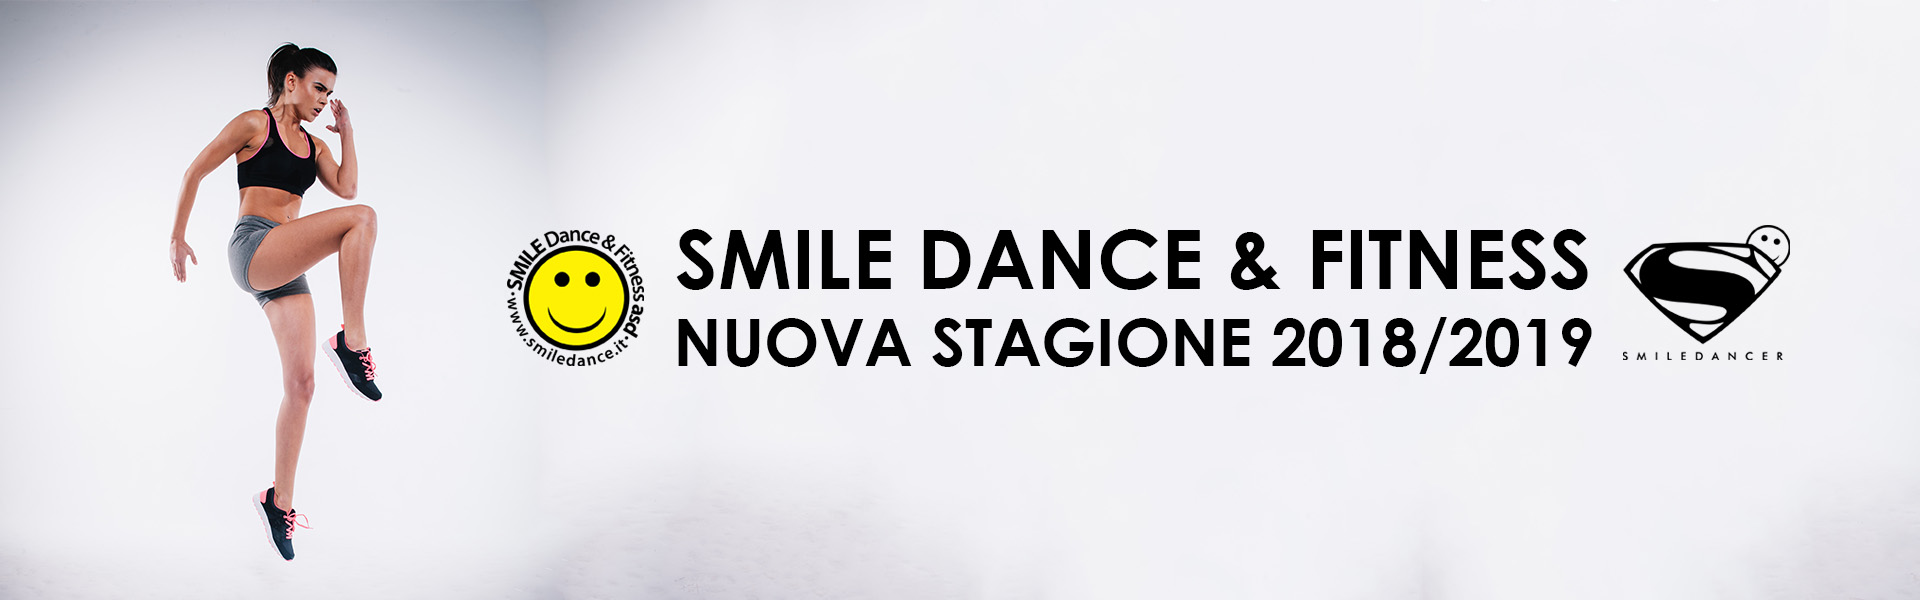 smile dance & fitness stagione 2019